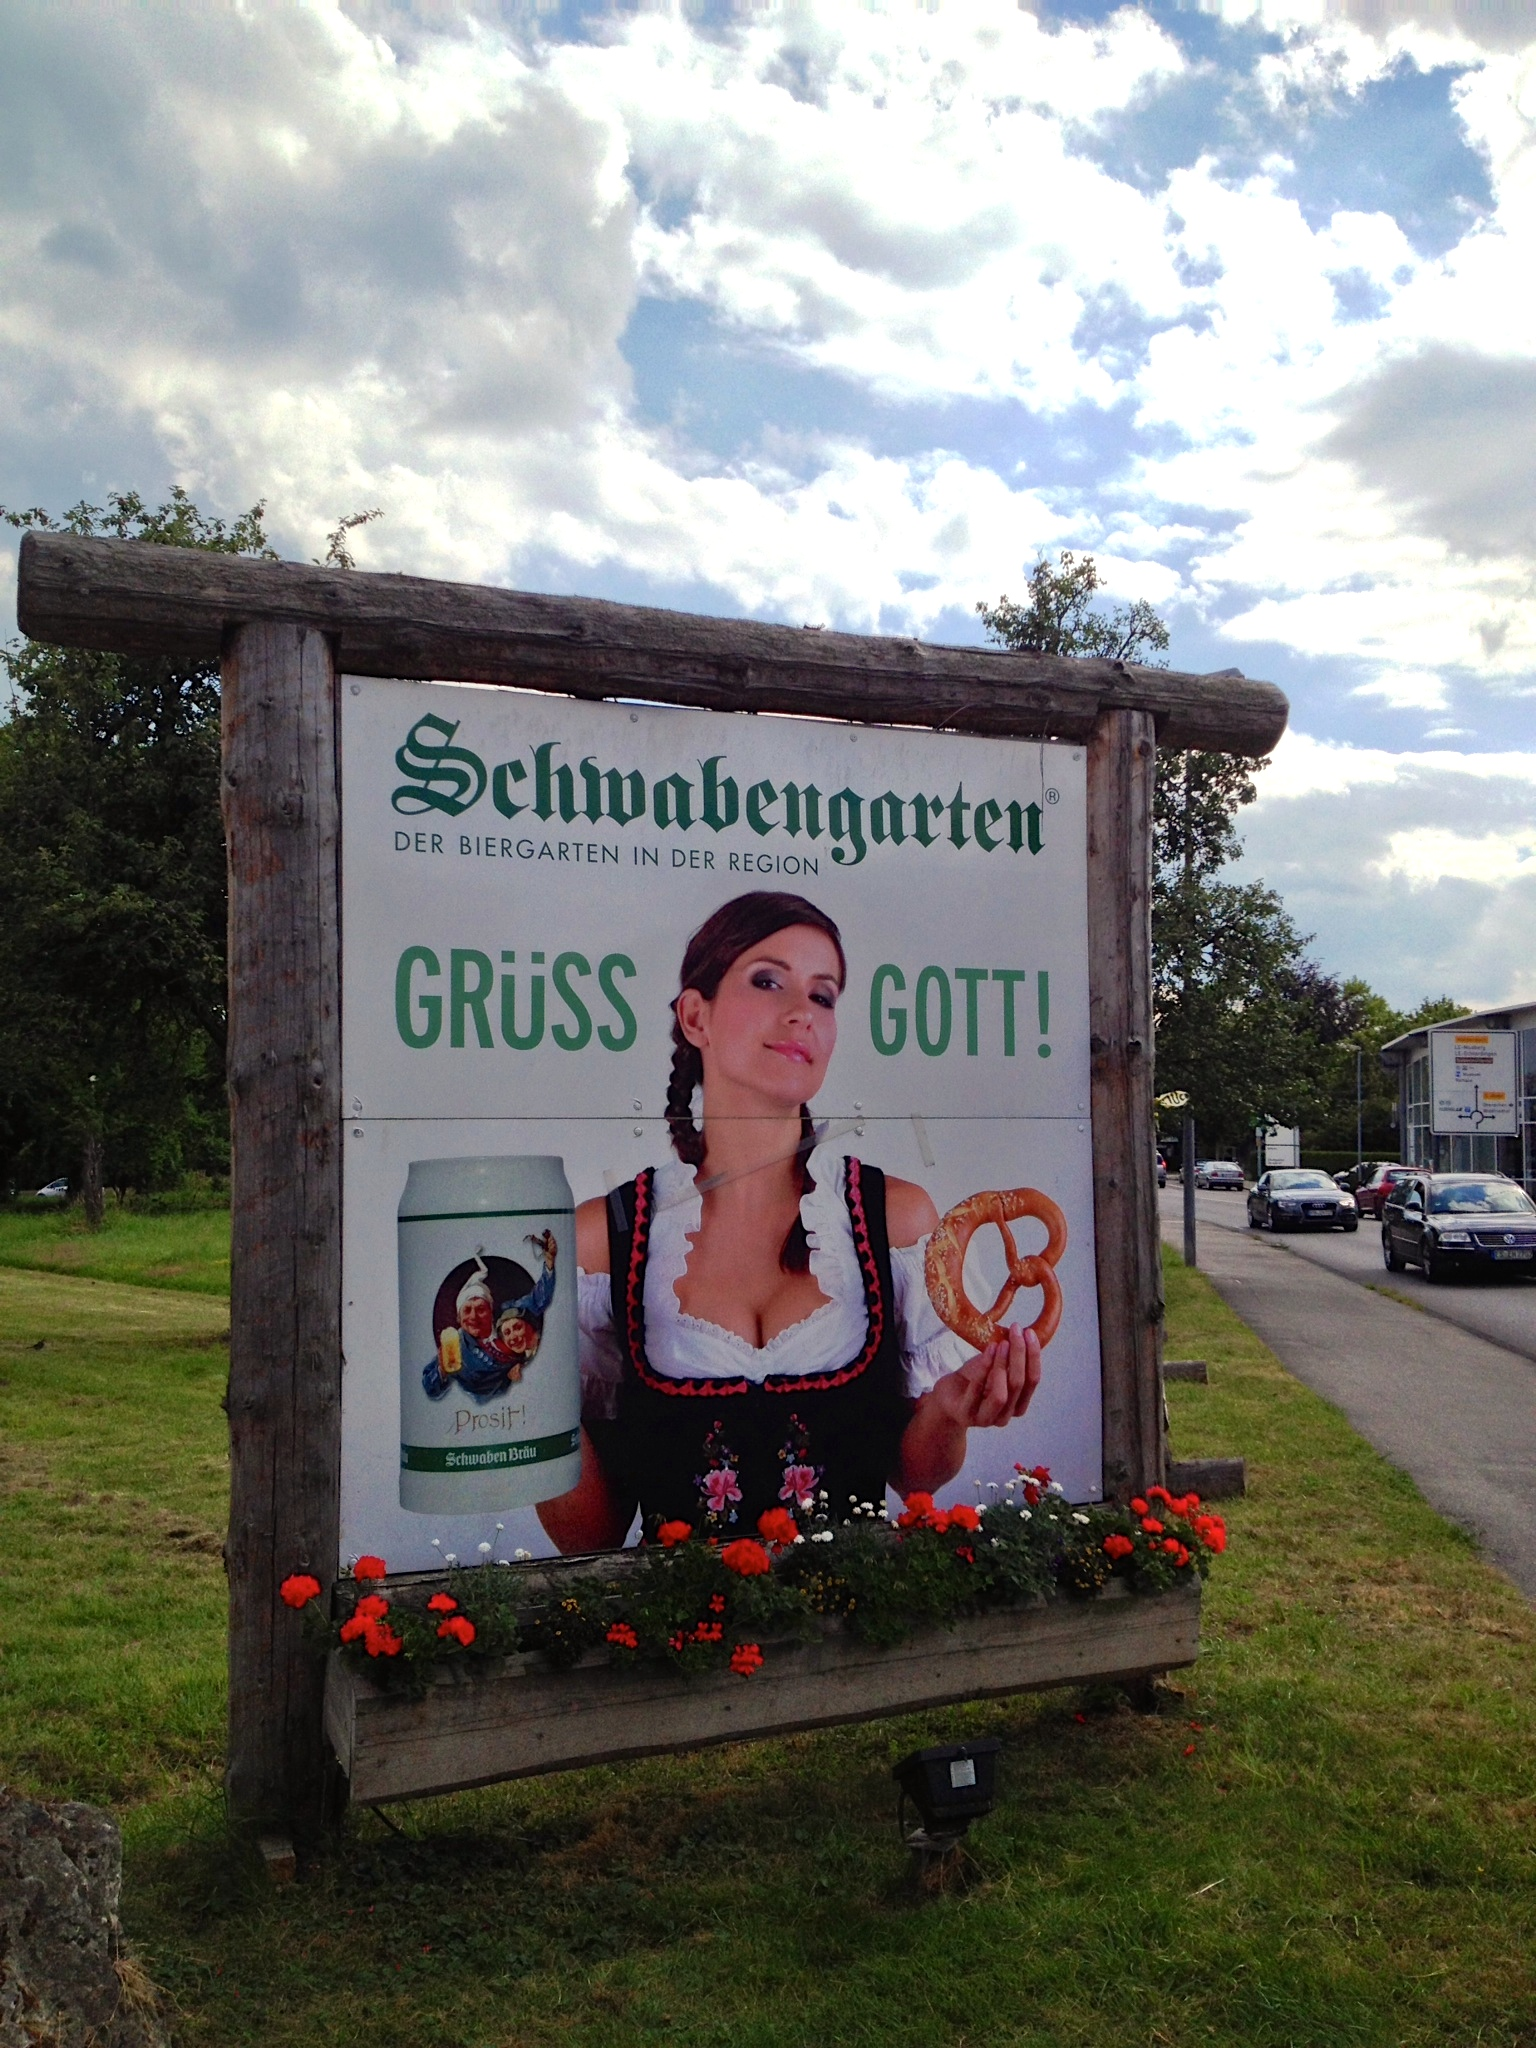 Traditionally suggestive advertisement with a woman in a  dirndl